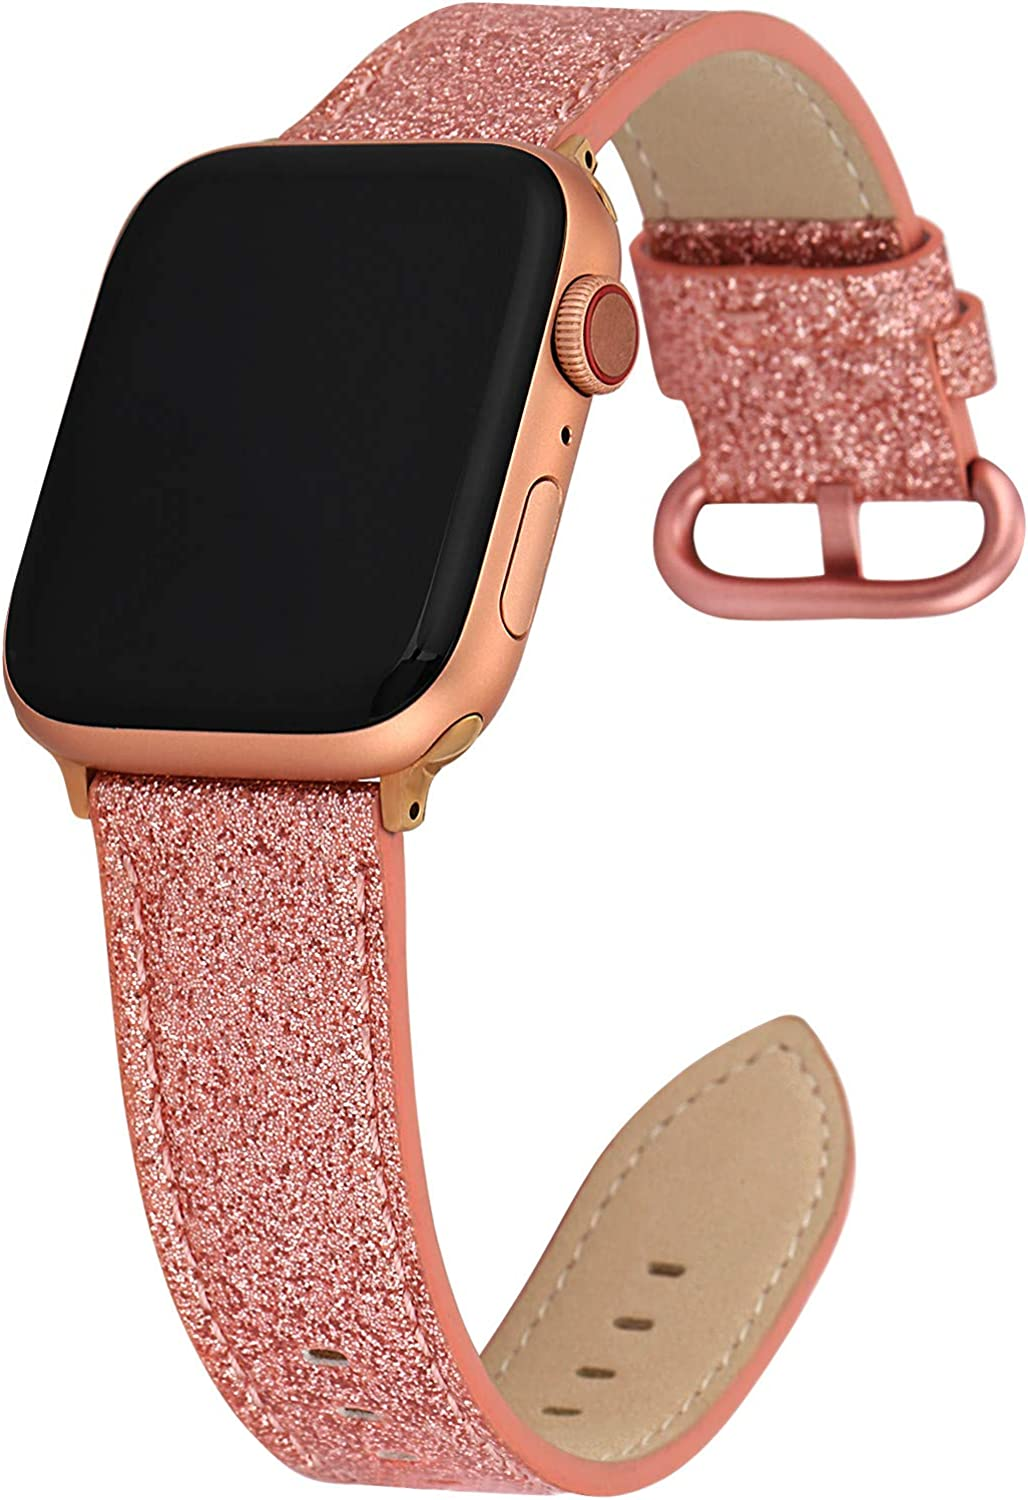 Greaciary Glitter Leather Band Compatible with Apple Watch Band,Shiny Bling Elegant Genuine Leather Strap Compatible for iWatch Series 5/4/3/2/1,Sport Edition Women Girl